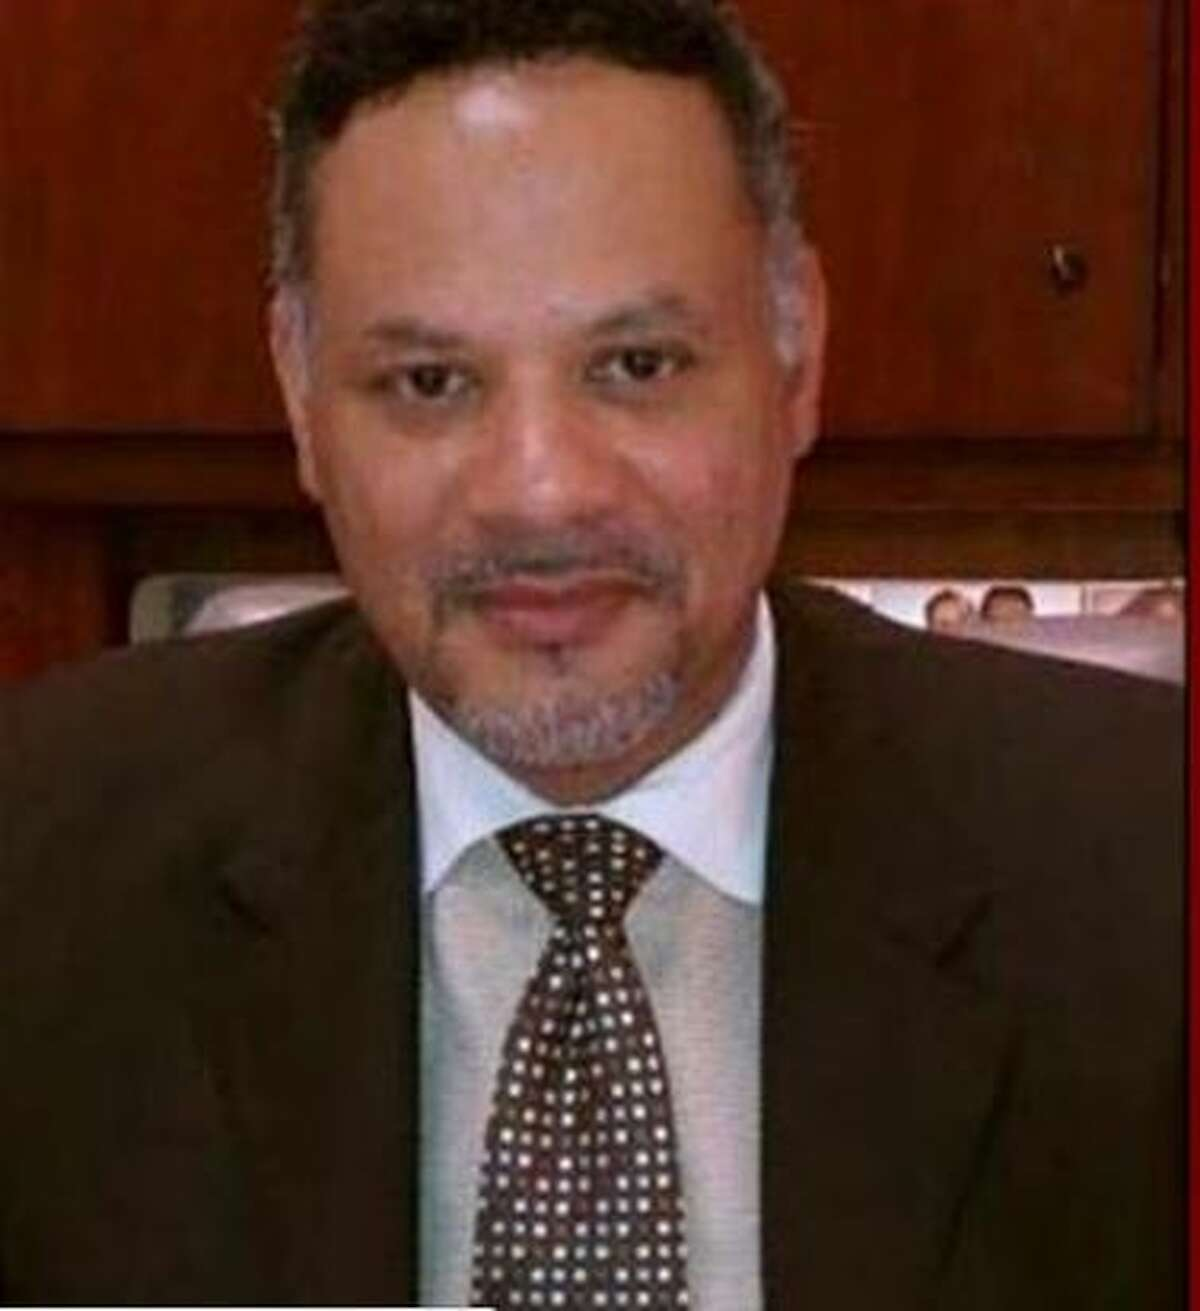 Edward Wayne Rene, the former assistant dean of admissions at Texas Southern University faces a second-degree felony theft charge.